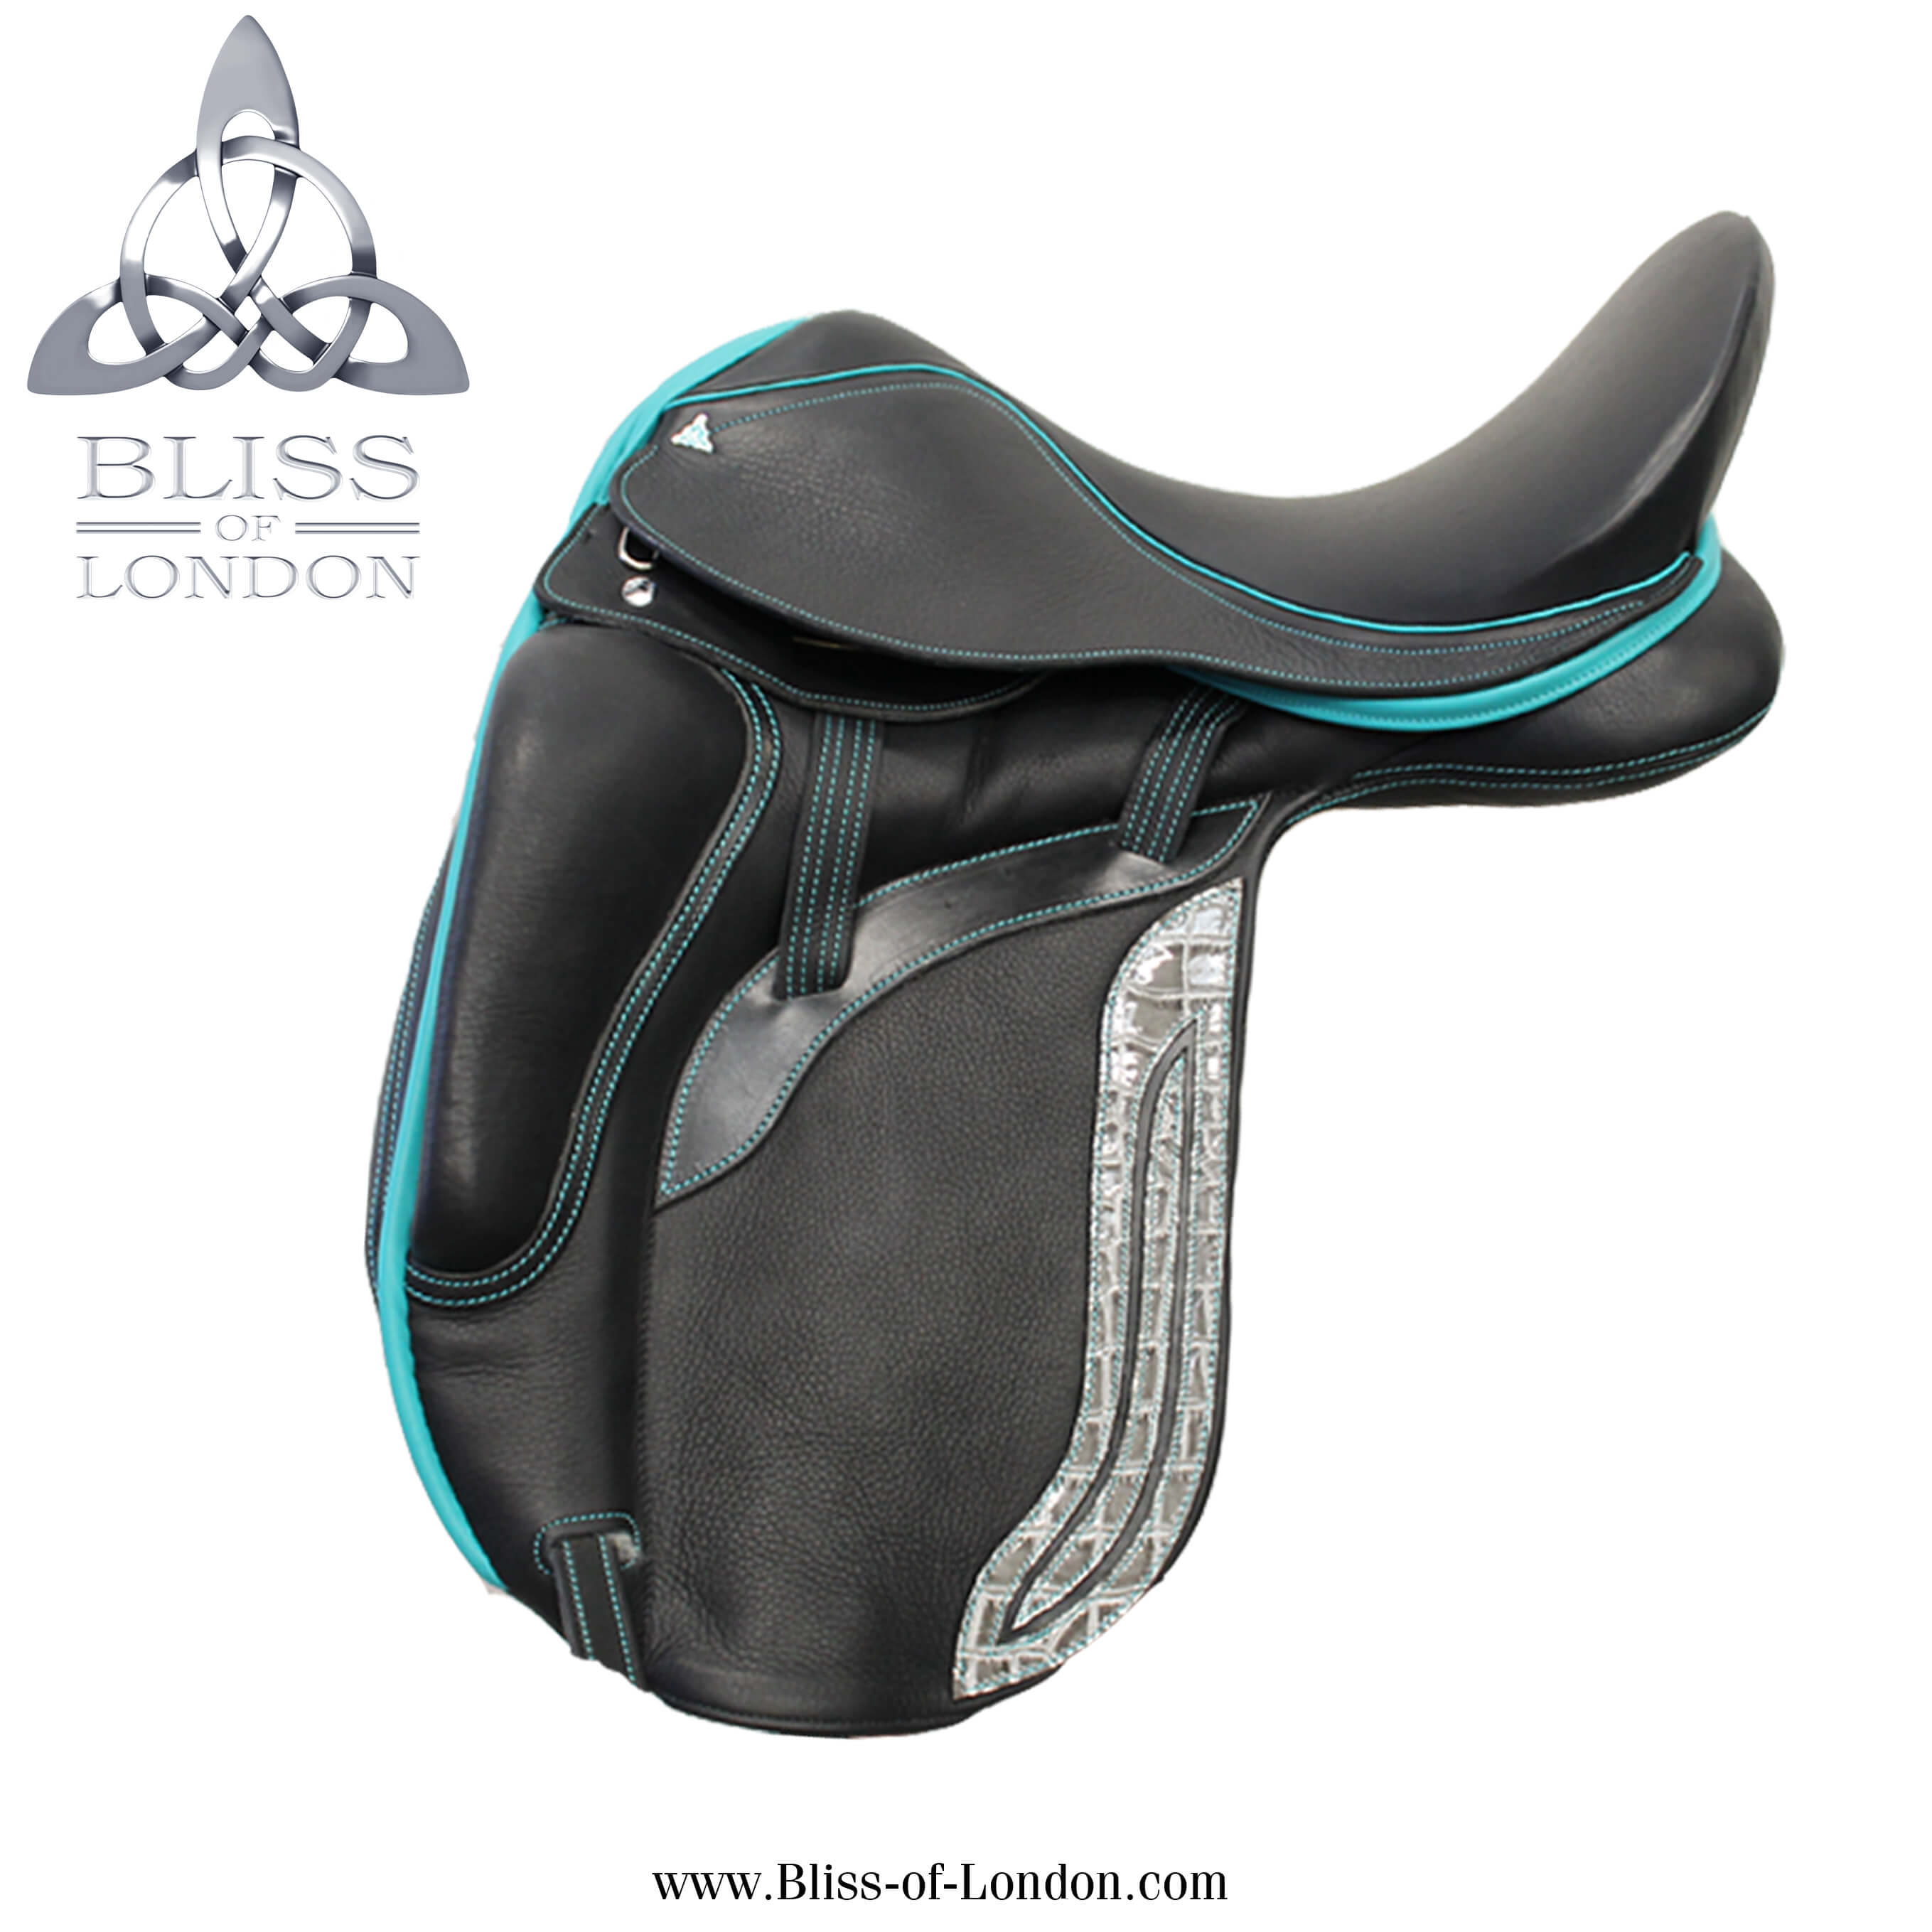 2 Bliss Paramour Dressage Teal & Grey Patent Croc